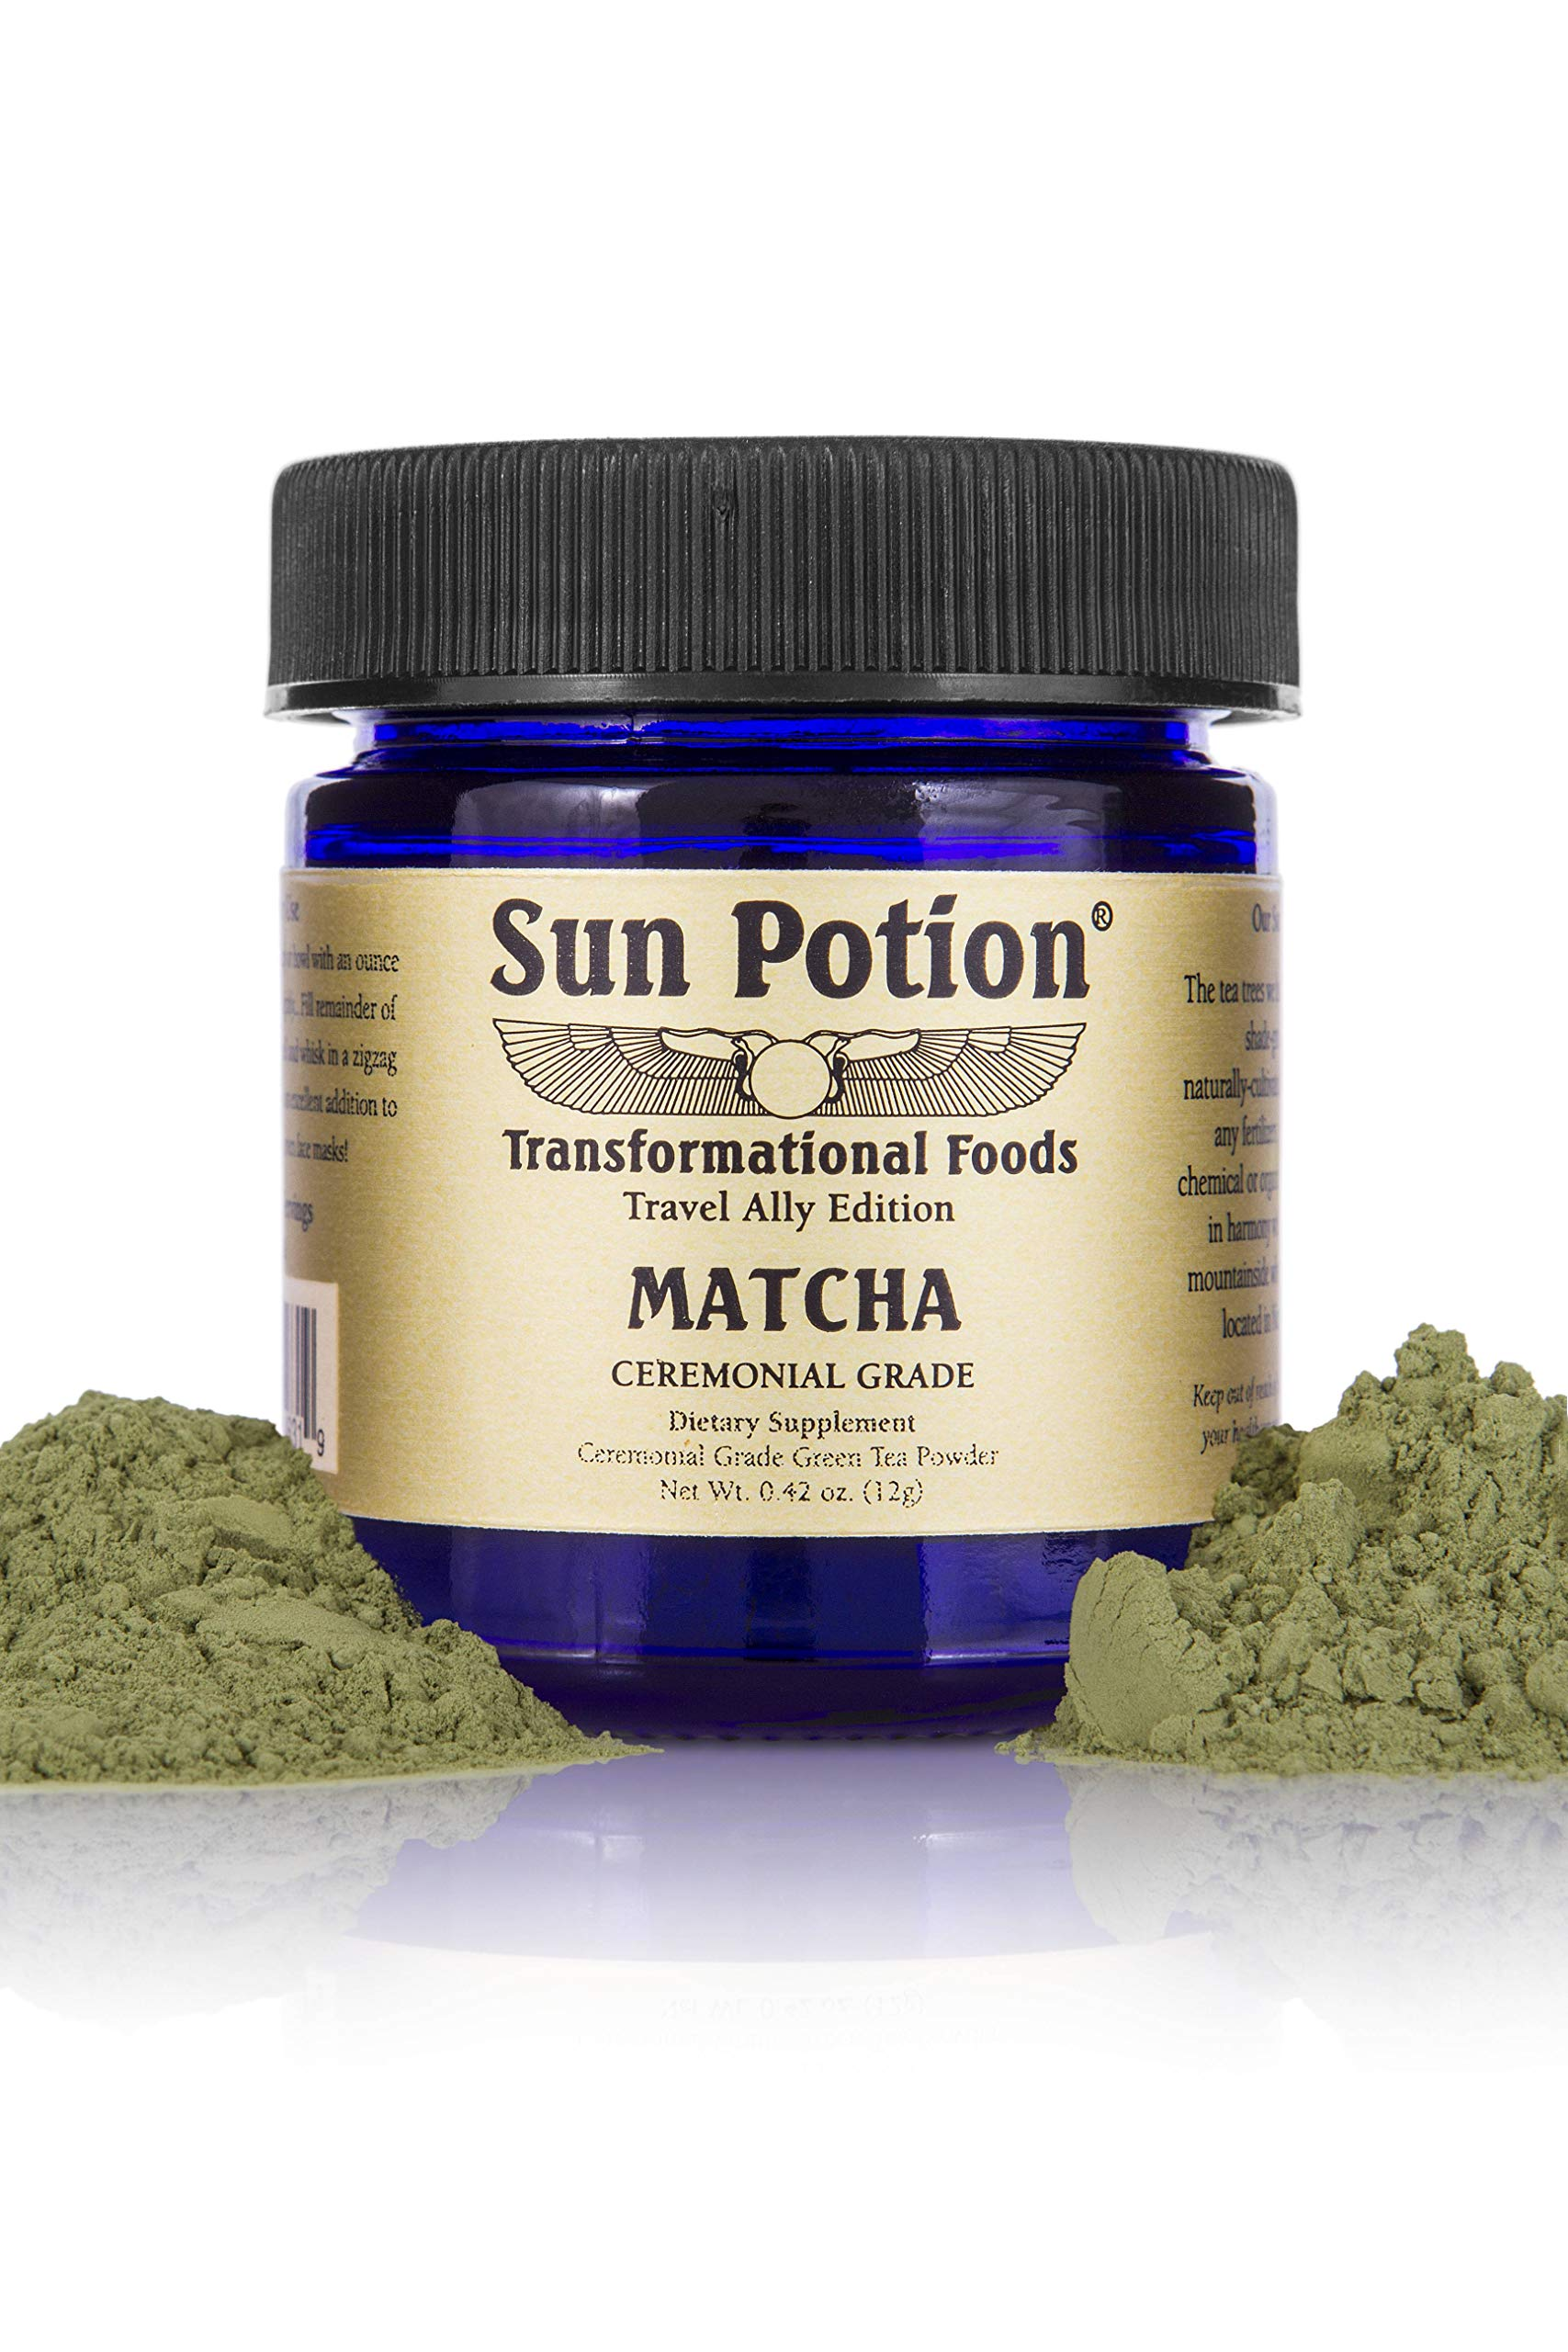 White Dragon Matcha Green Tea Powder by Sun Potion - Boutique Style Organic Ceremonial Grade - Finest Exclusive and Highest Quality - Japanese Superfood - Antioxidant Energy Fat Burner - 12g